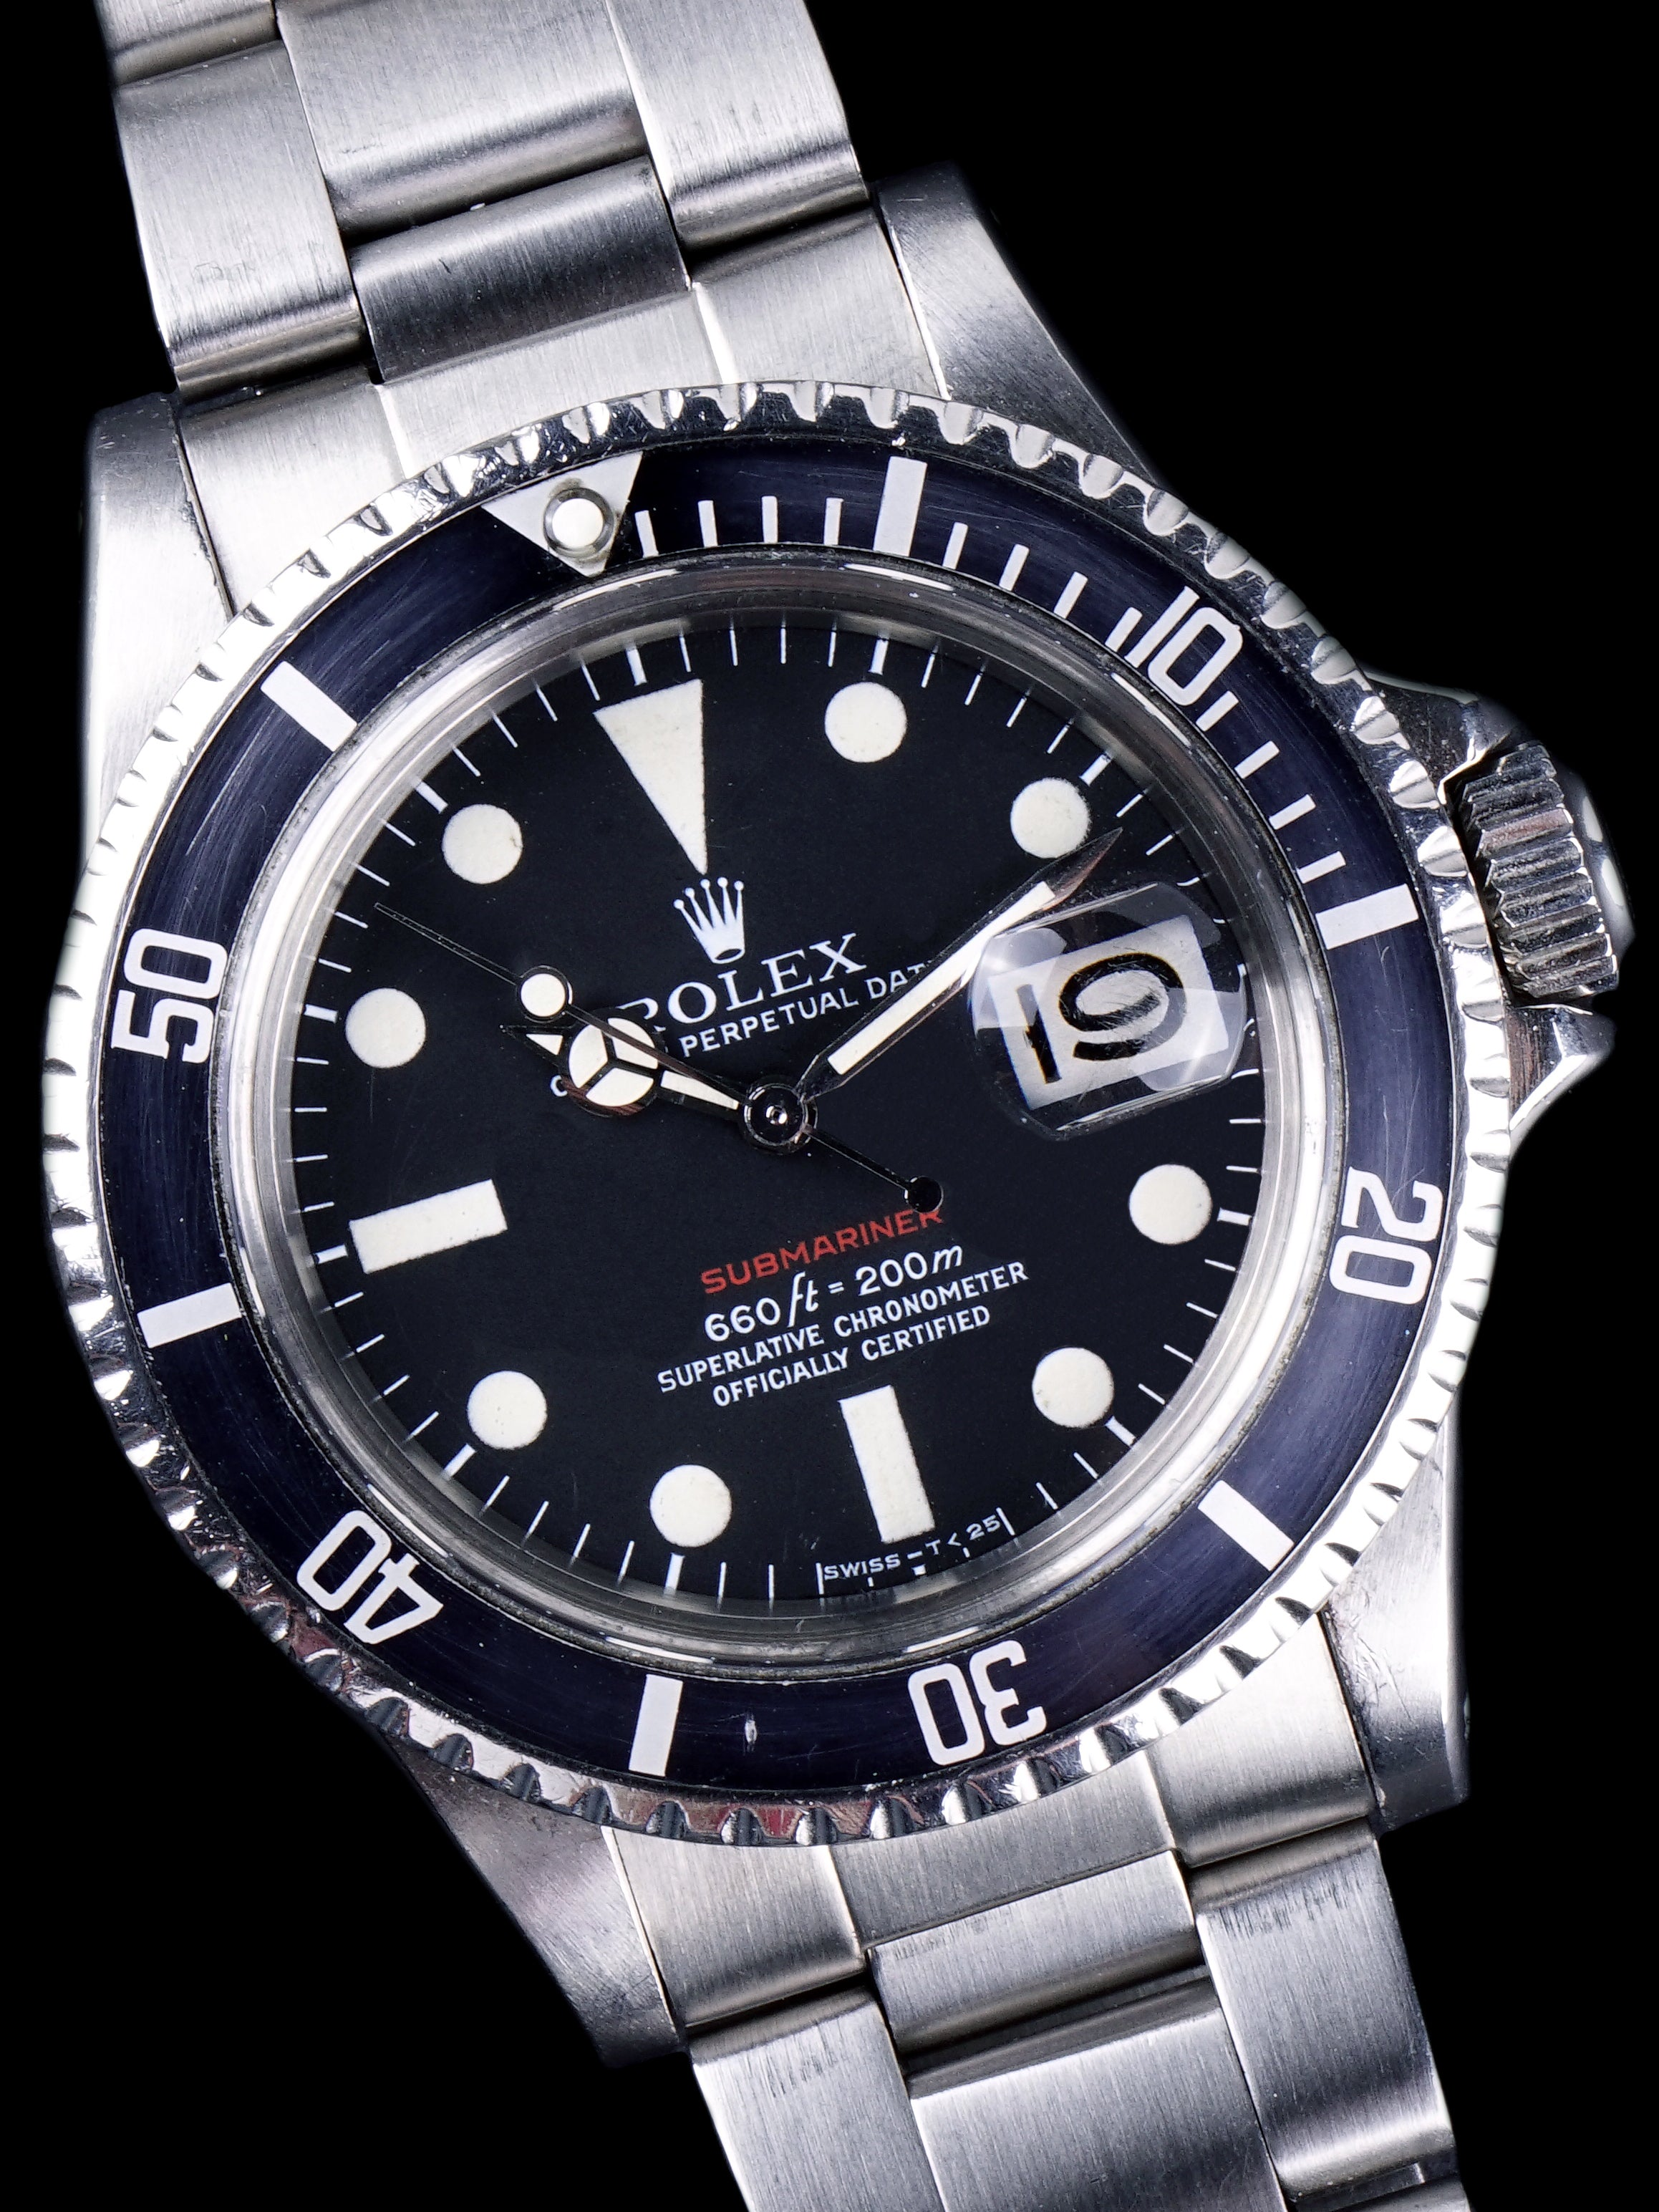 1972 Rolex Red Submariner (Ref. 1680) Mk. V